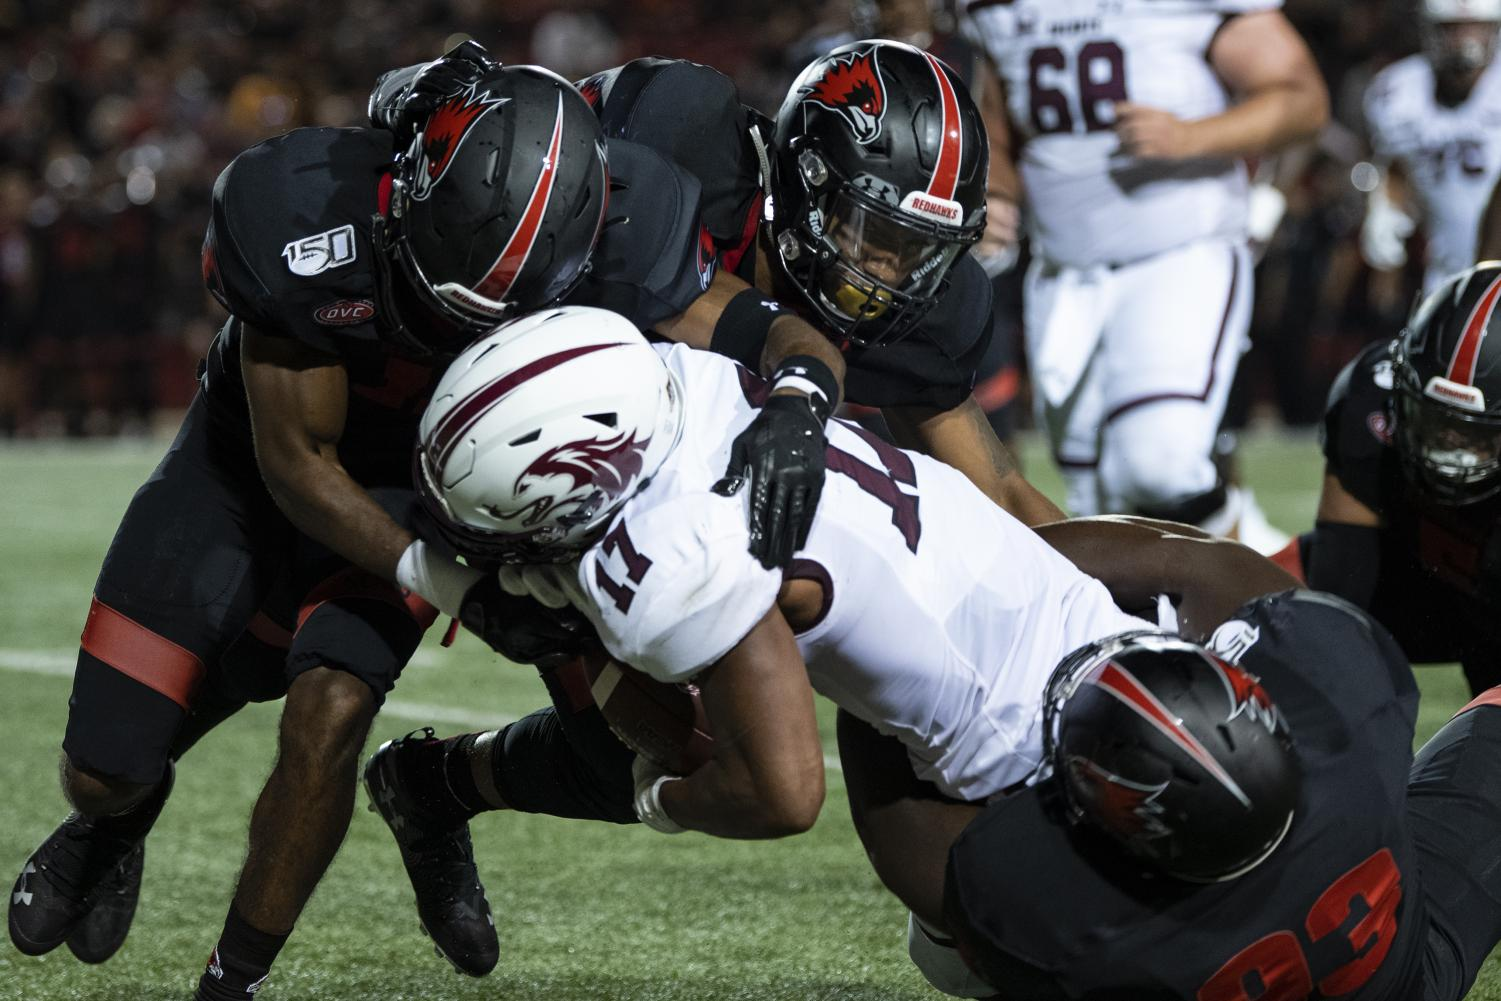 Saluki+junior+wide+receiver+Landon+Lenoi+gets+tackled+by+multiple+Redhawks+on+Aug.+29%2C+2019%2C+during+the+Salukis%27+26-44+loss+against+the+Southeast+Missouri+State+Redhawks++at+the+Houck+Stadium+in+Cape+Giradeau%2C+Missouri.+